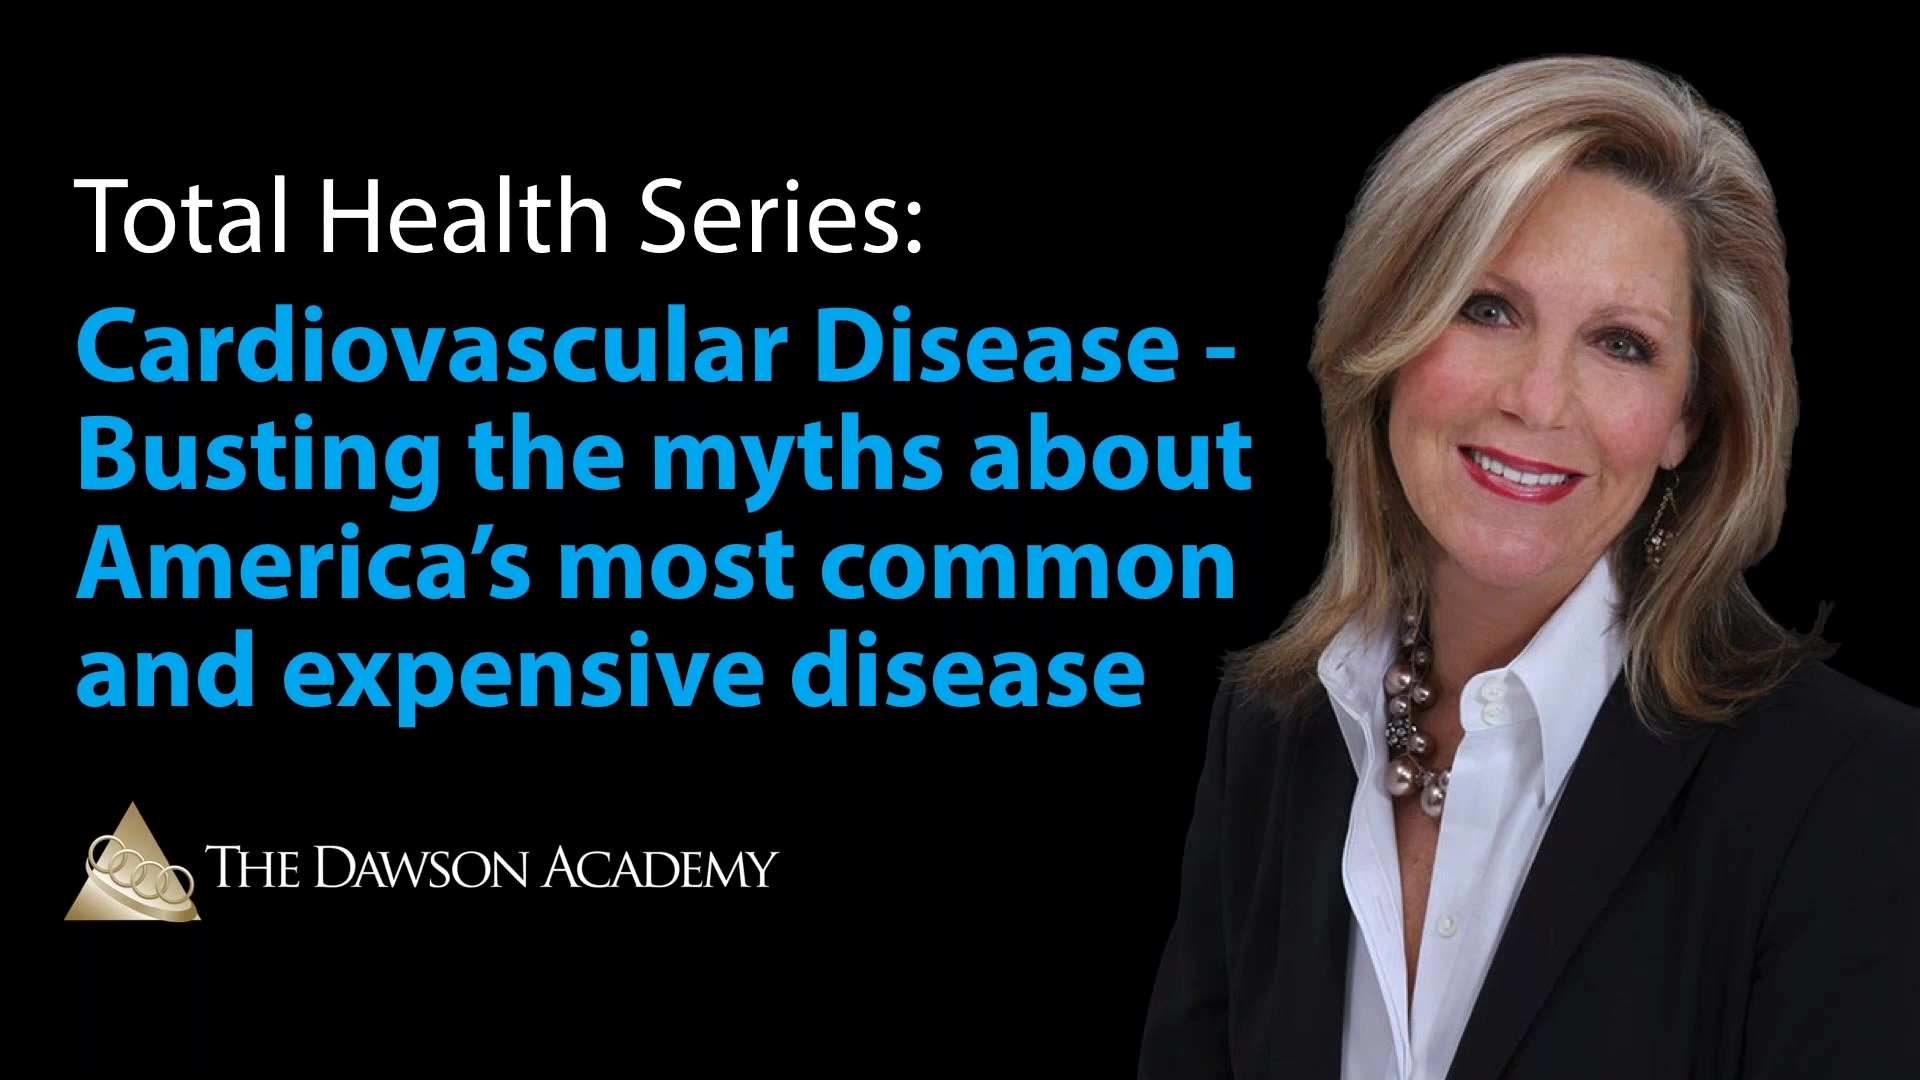 Total Health Series_ Cardiovascular Disease - Busting the myths about America's most common and expe